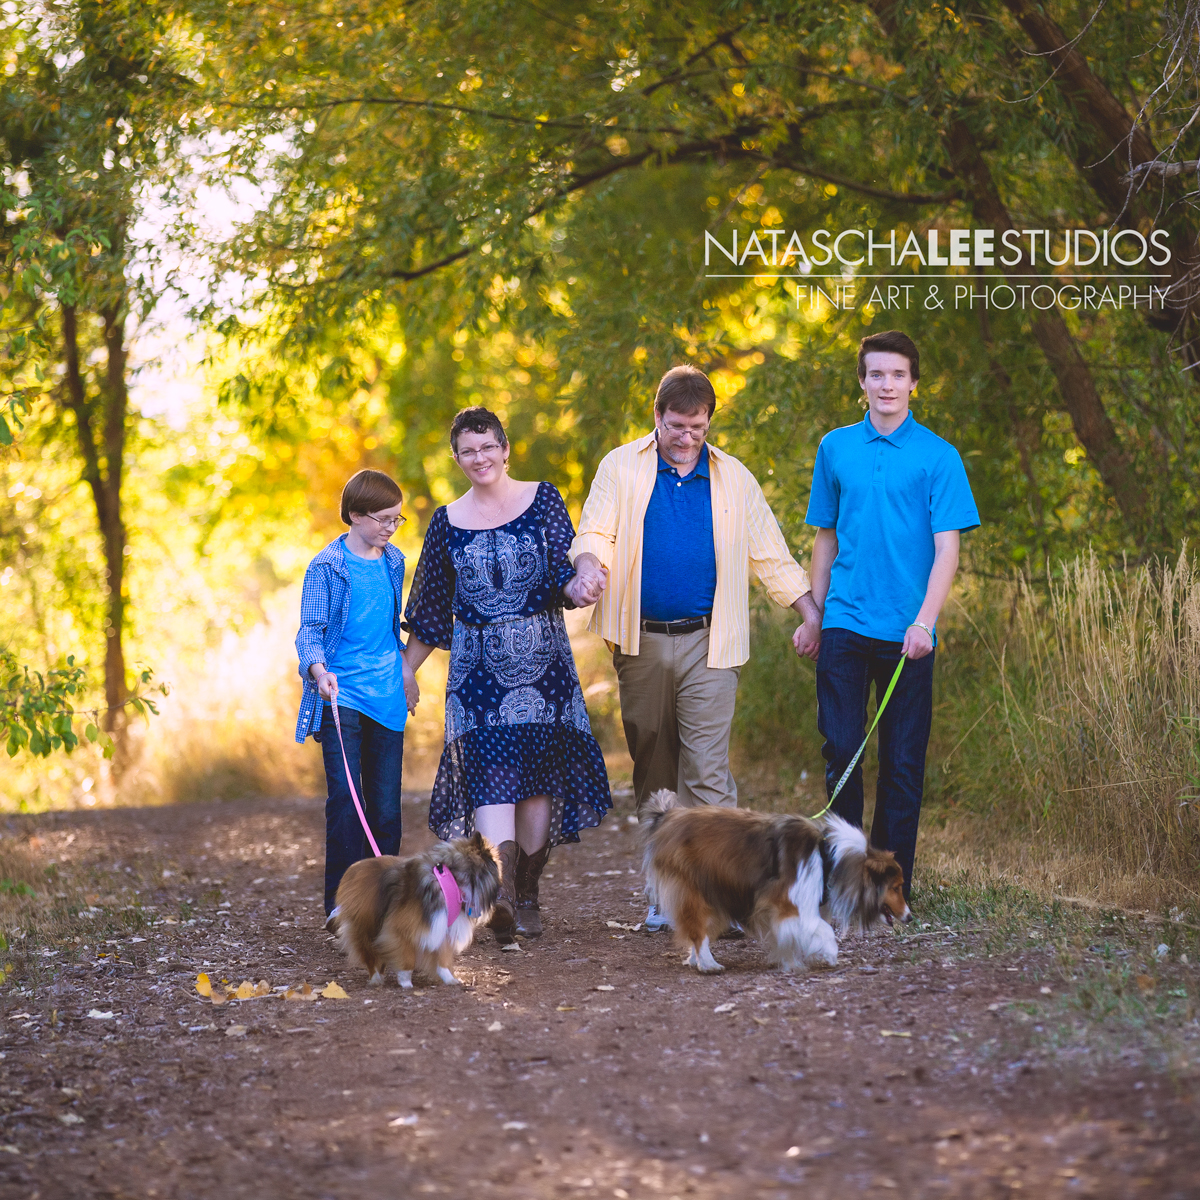 Broomfield Family Photography – Fall Family Portraits  | Natascha Lee Studios